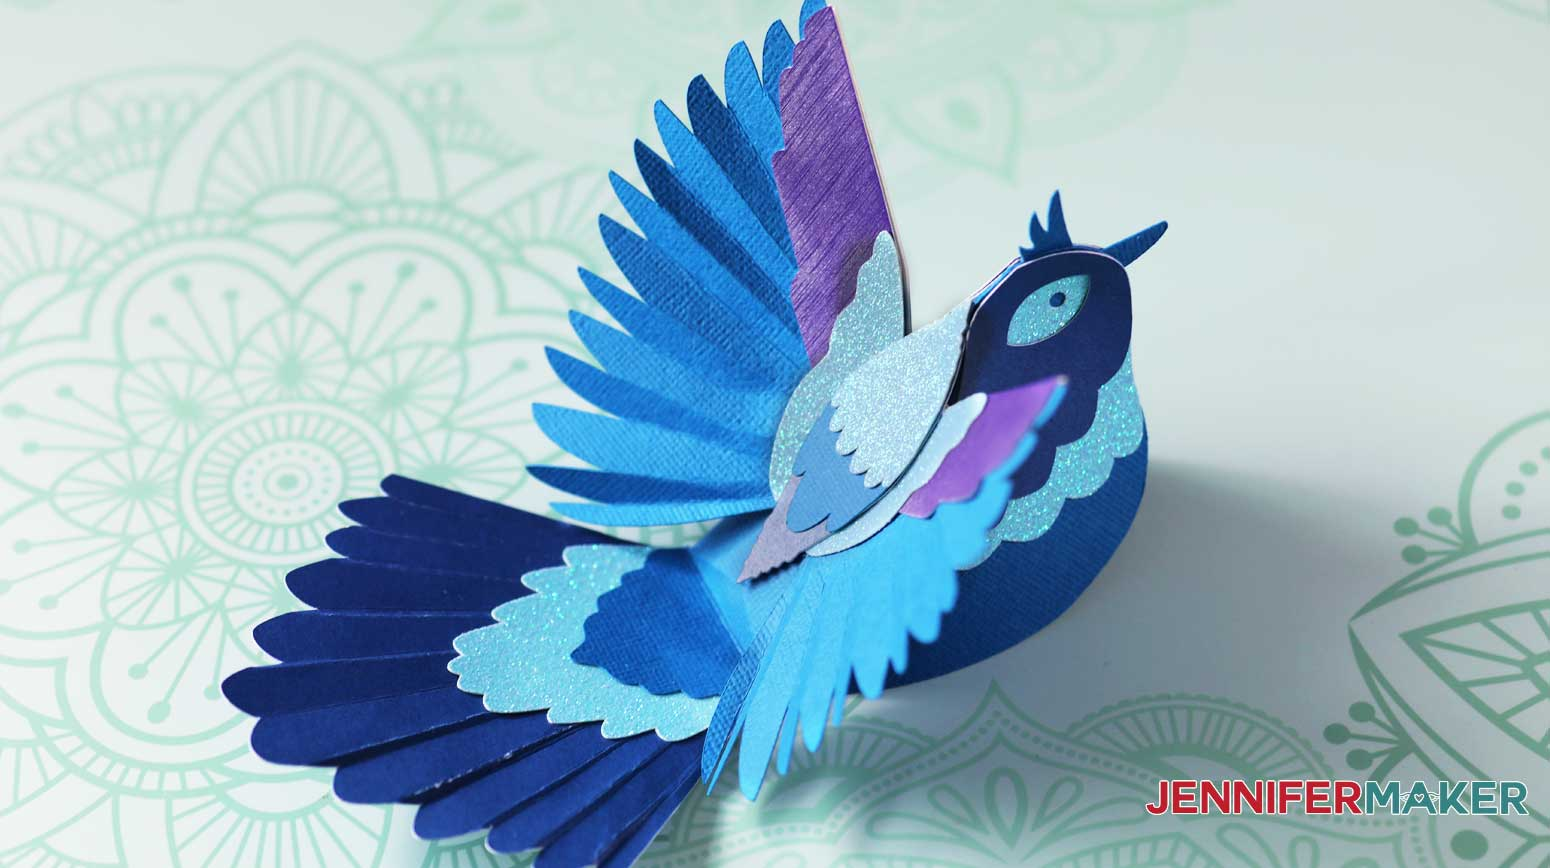 Assembled paper bird by JenniferMaker